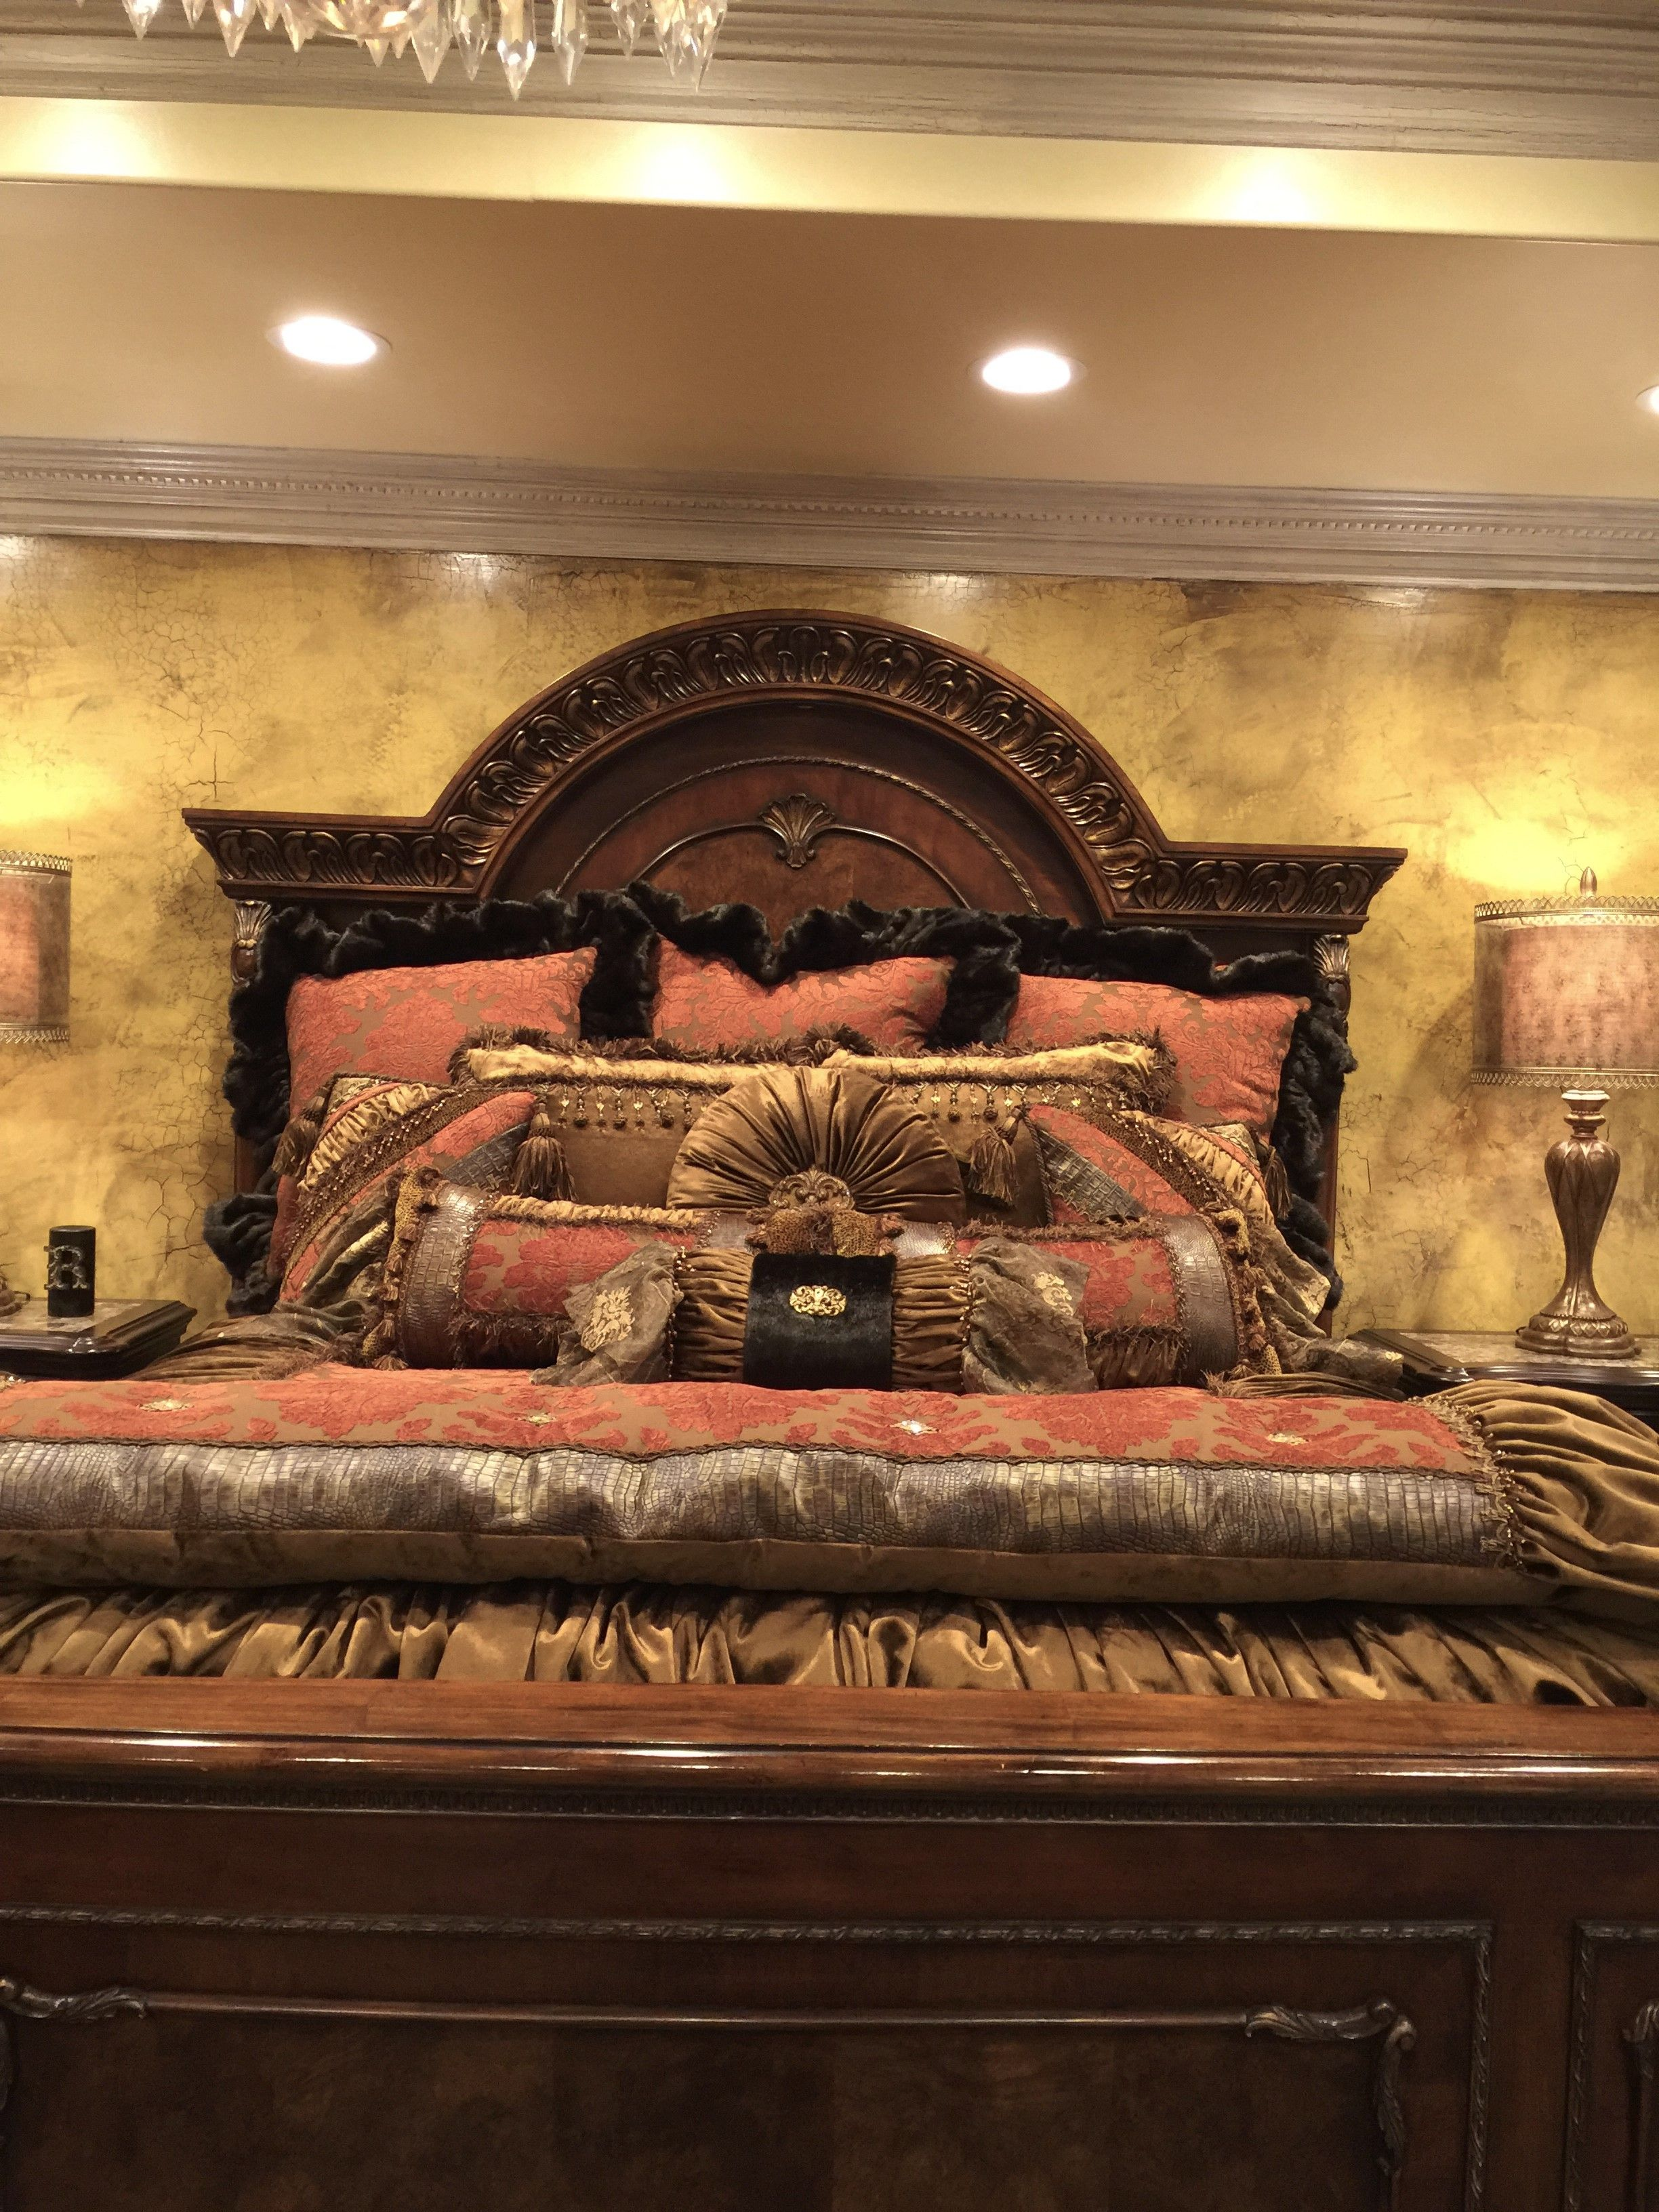 Customized Luxury Bedding and Window Treatments | Luxury, Bed ...